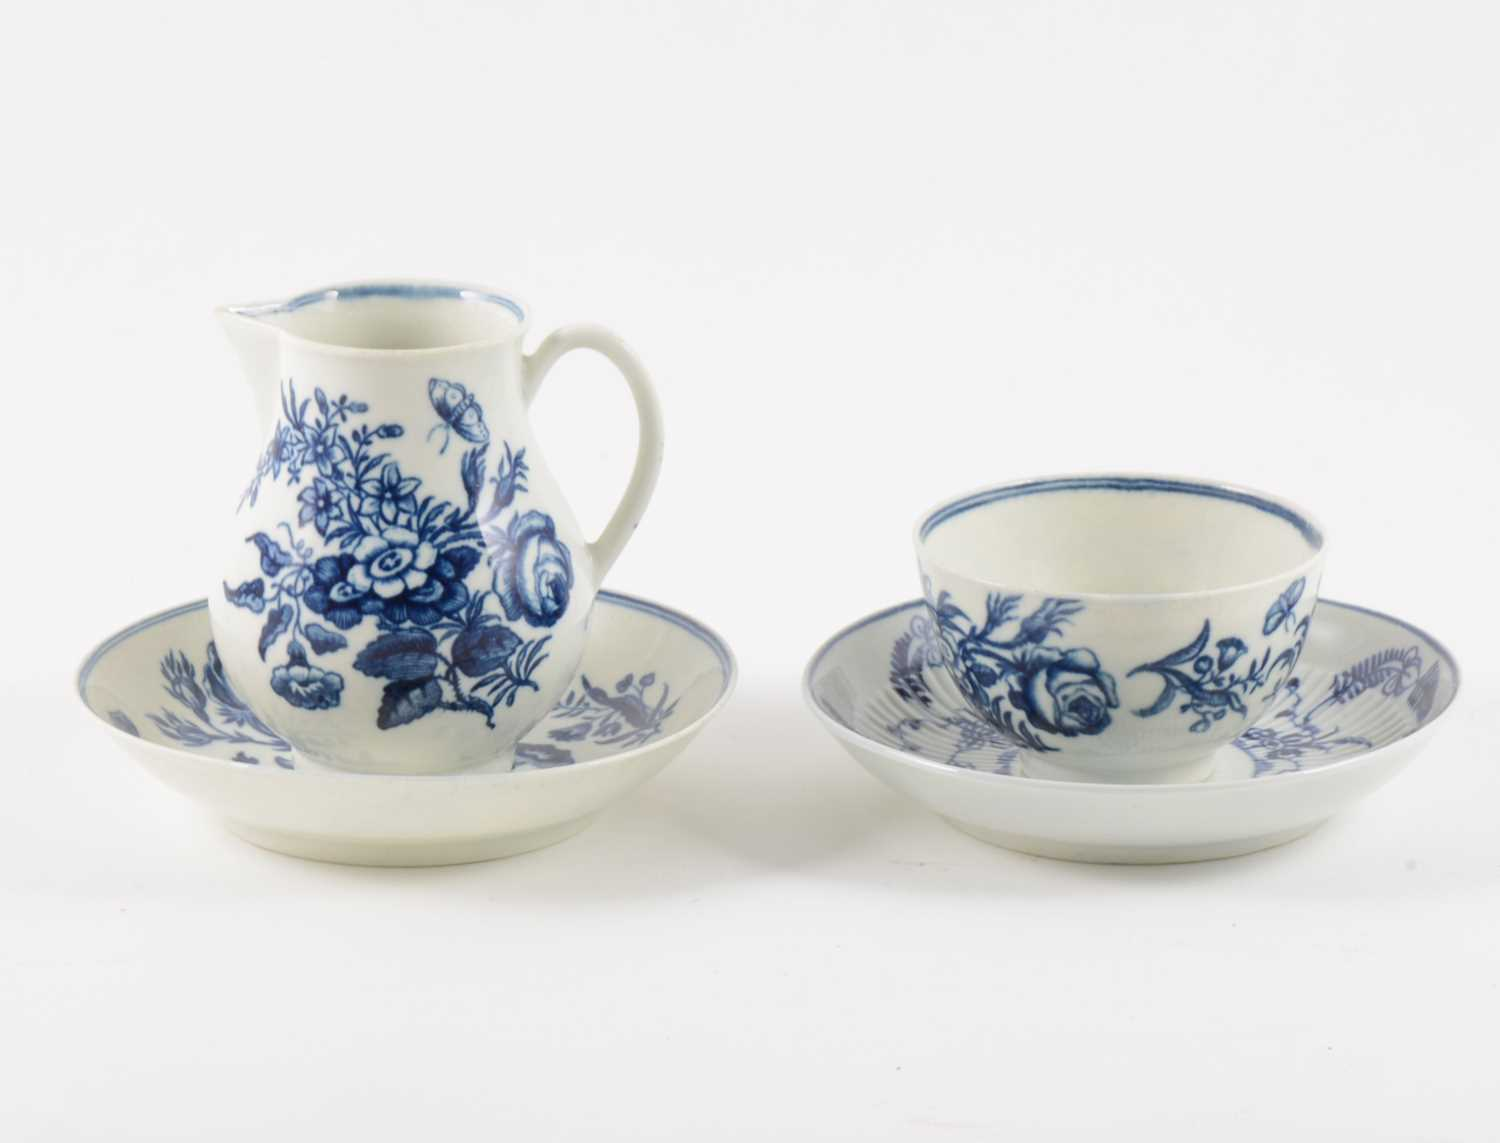 Lot 17-A Worcester blue and white porcelain sparrow-beak jug, matching teabowl and saucer, and another saucer